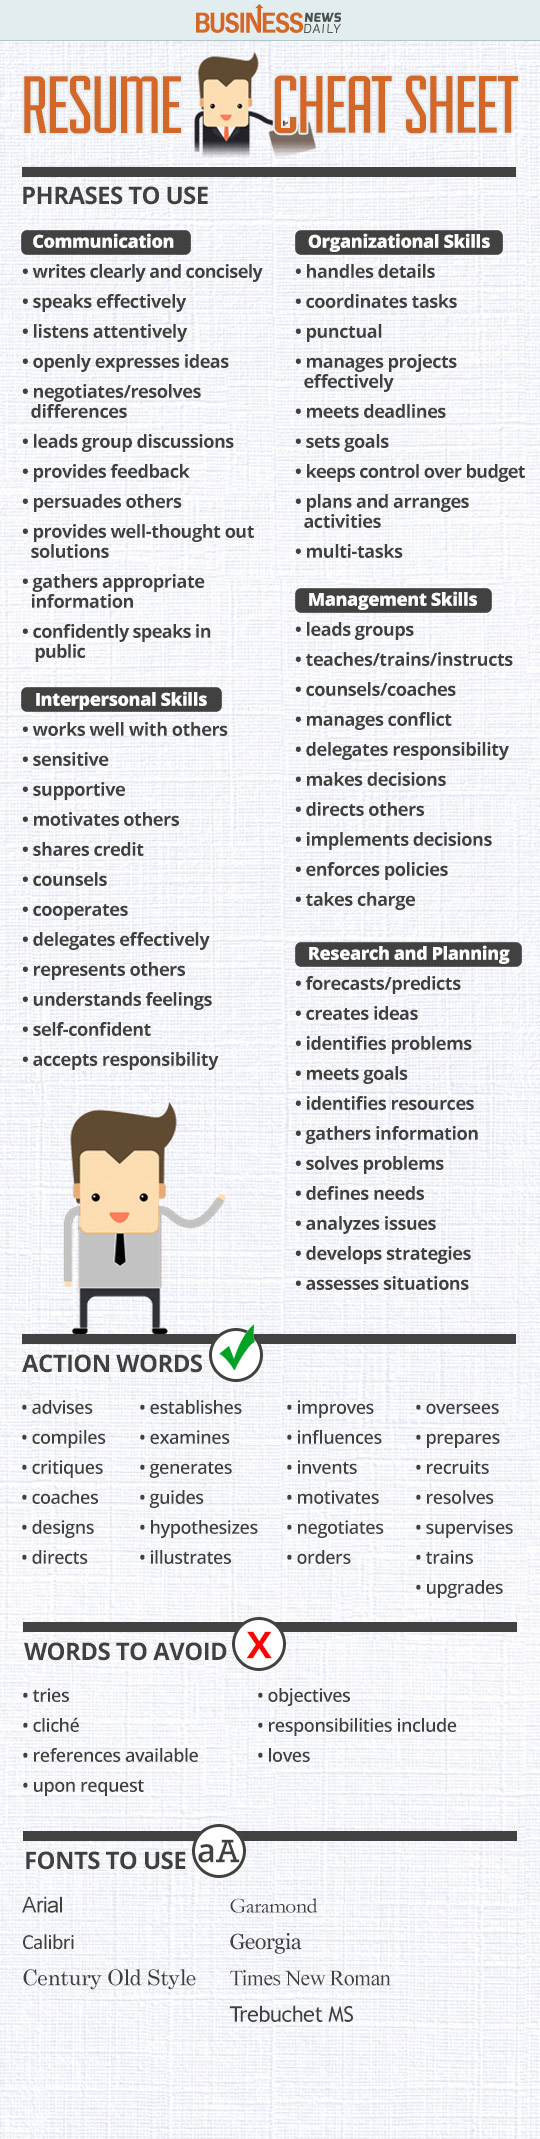 your resume cheat sheet writing guide businessnewsdaily good words for skills law clerk Resume Good Words For Resume Skills